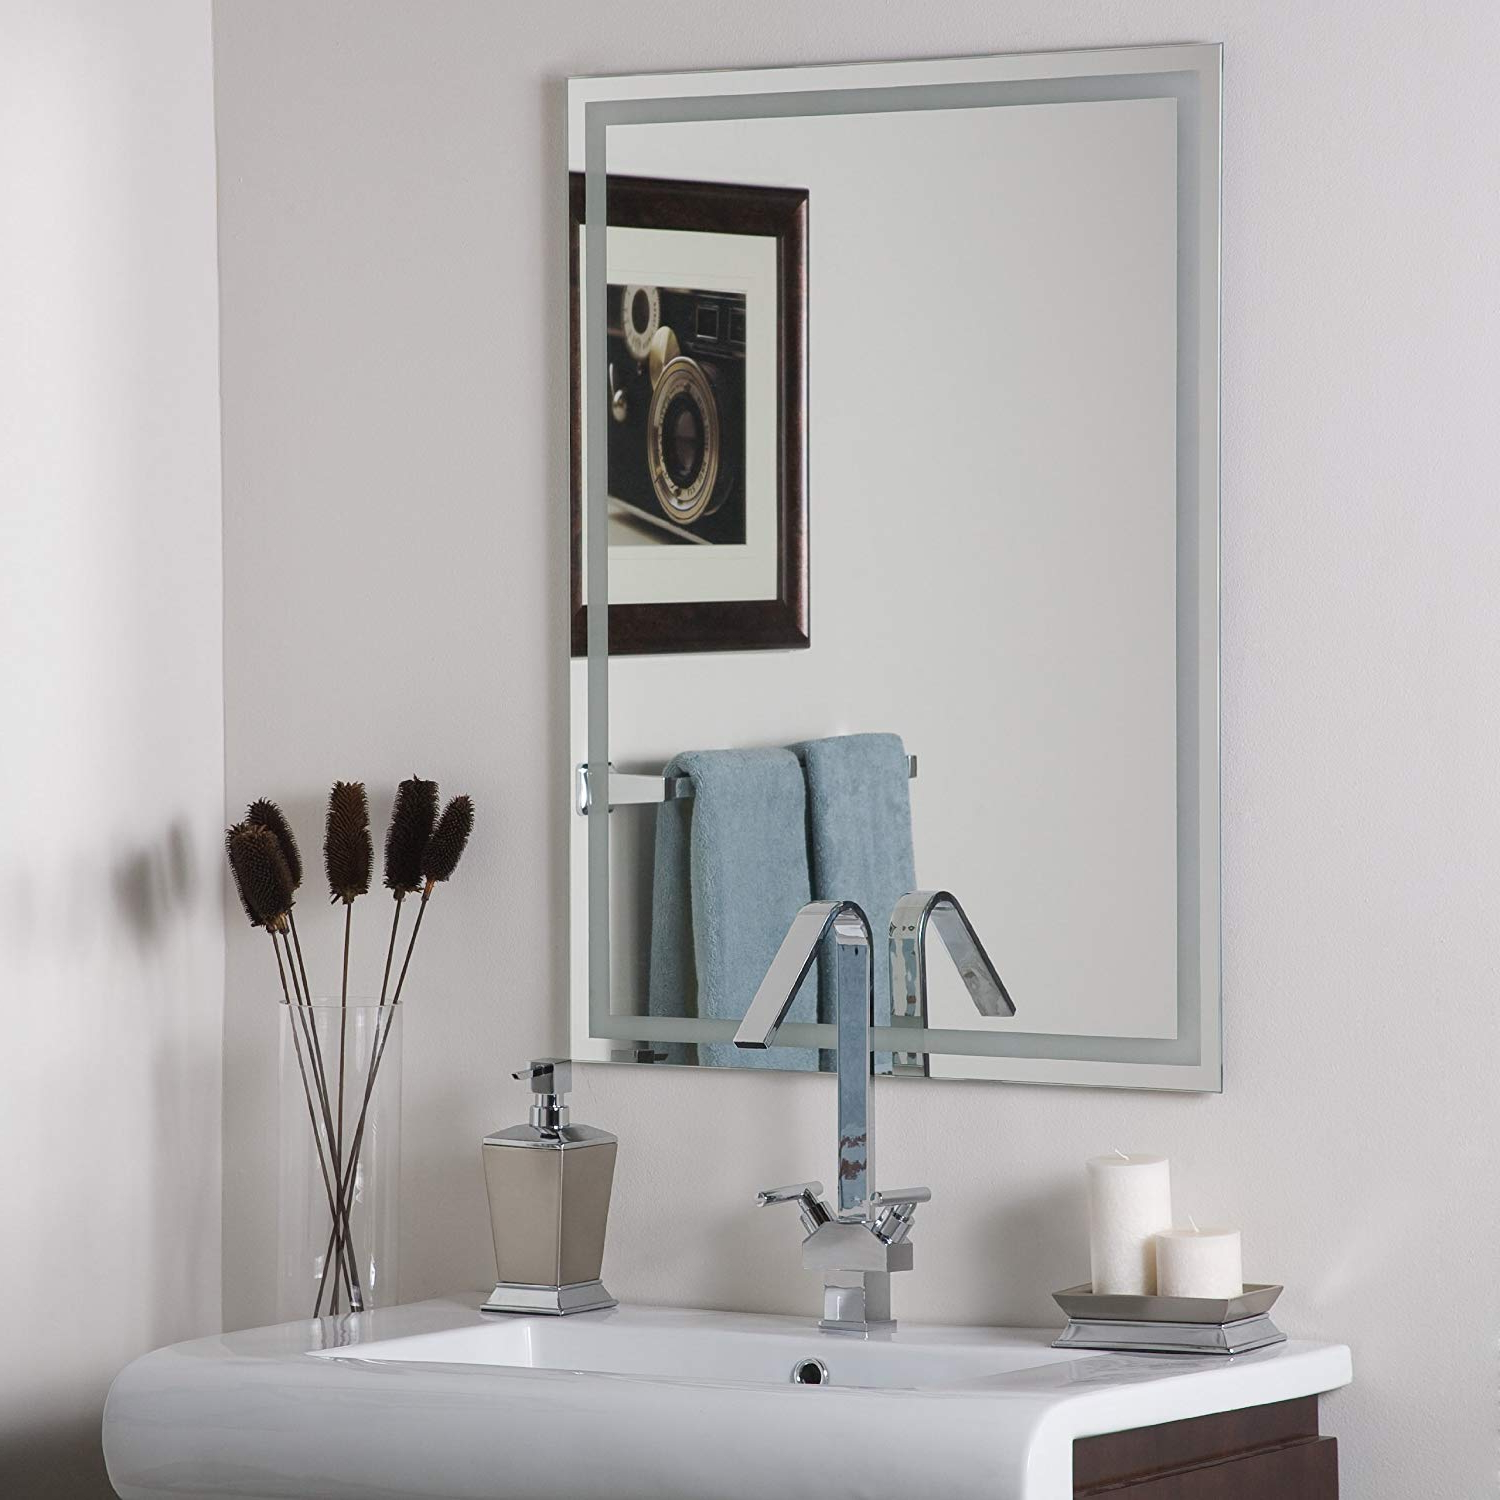 Decor Wonderland Frameless Etch Mirror Within Latest Triple Oval Wall Mirrors (View 7 of 20)